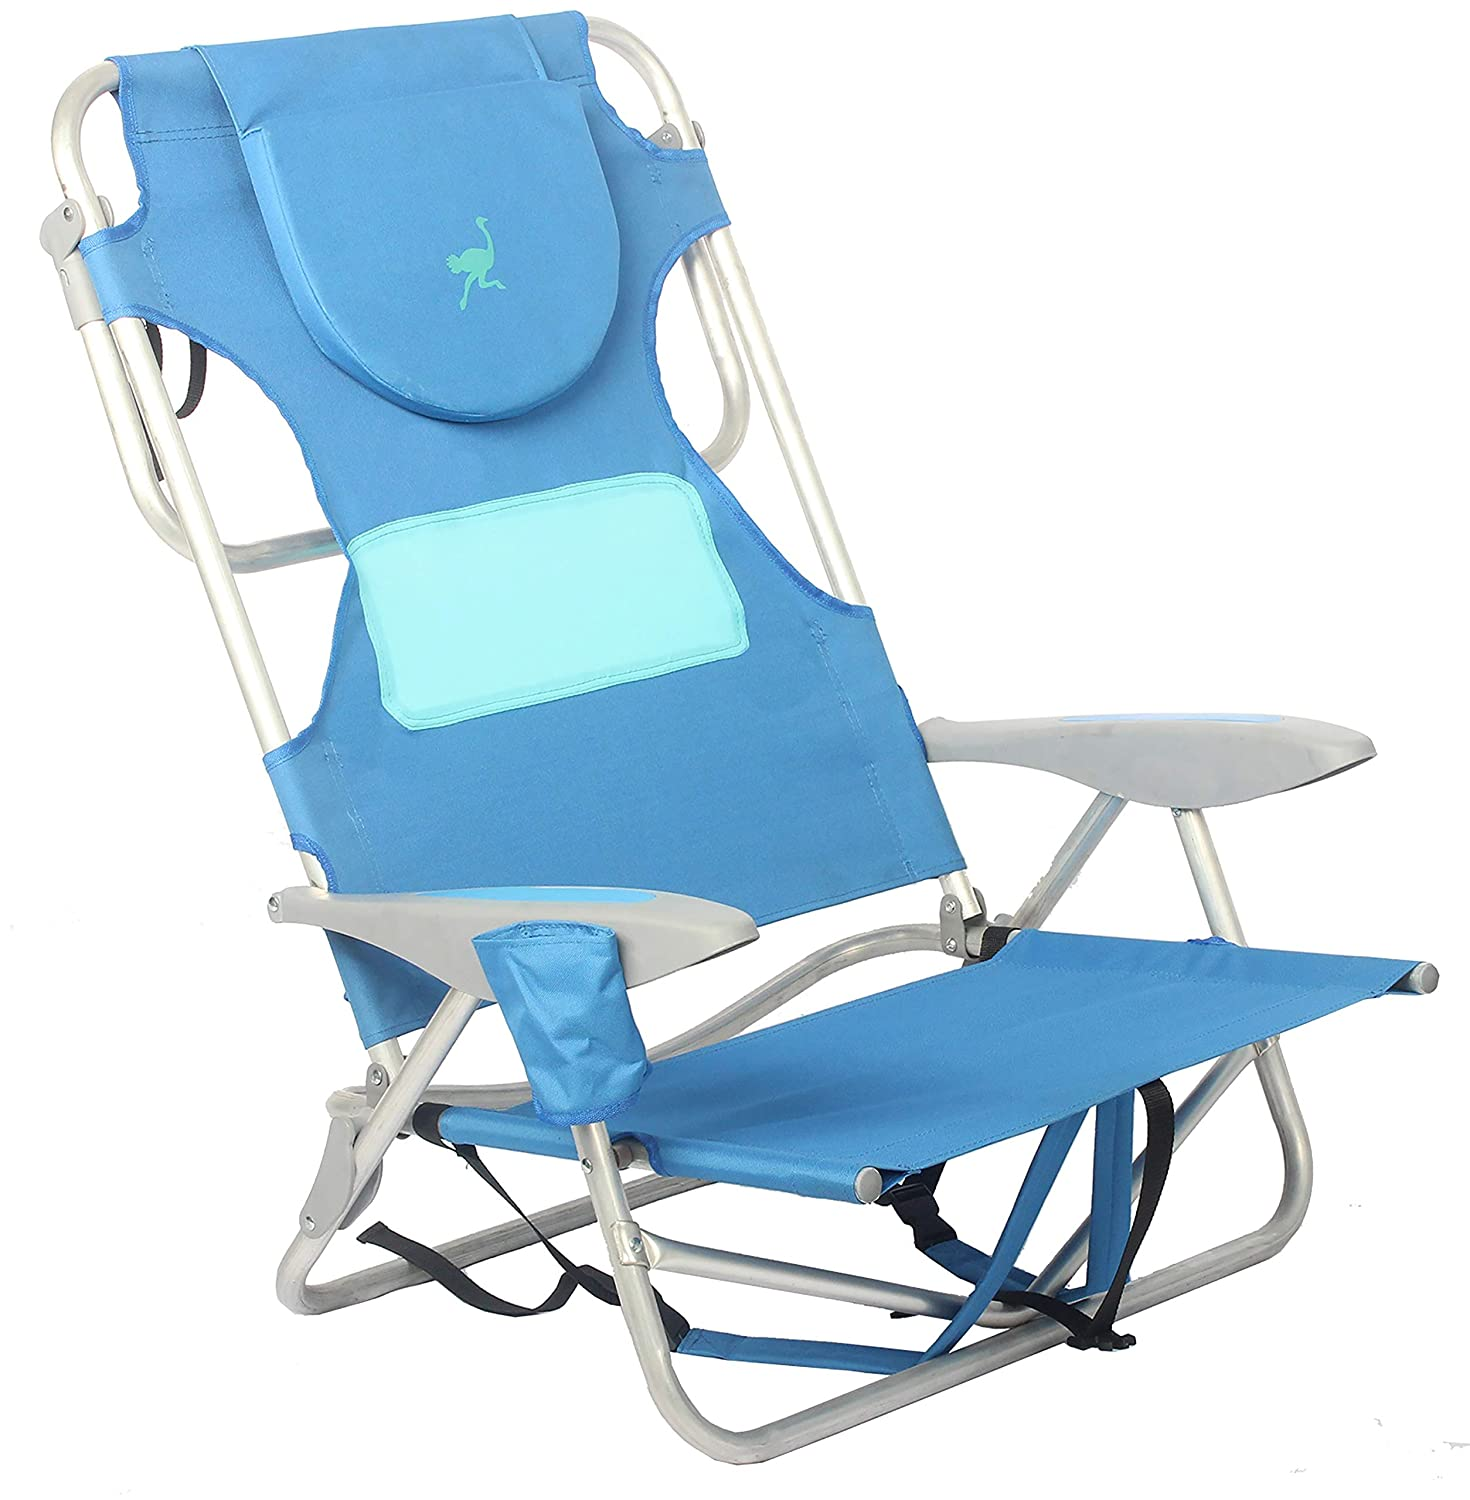 Wondrous 10 Best Backpack Beach Chair Reviews Ratings Pdpeps Interior Chair Design Pdpepsorg